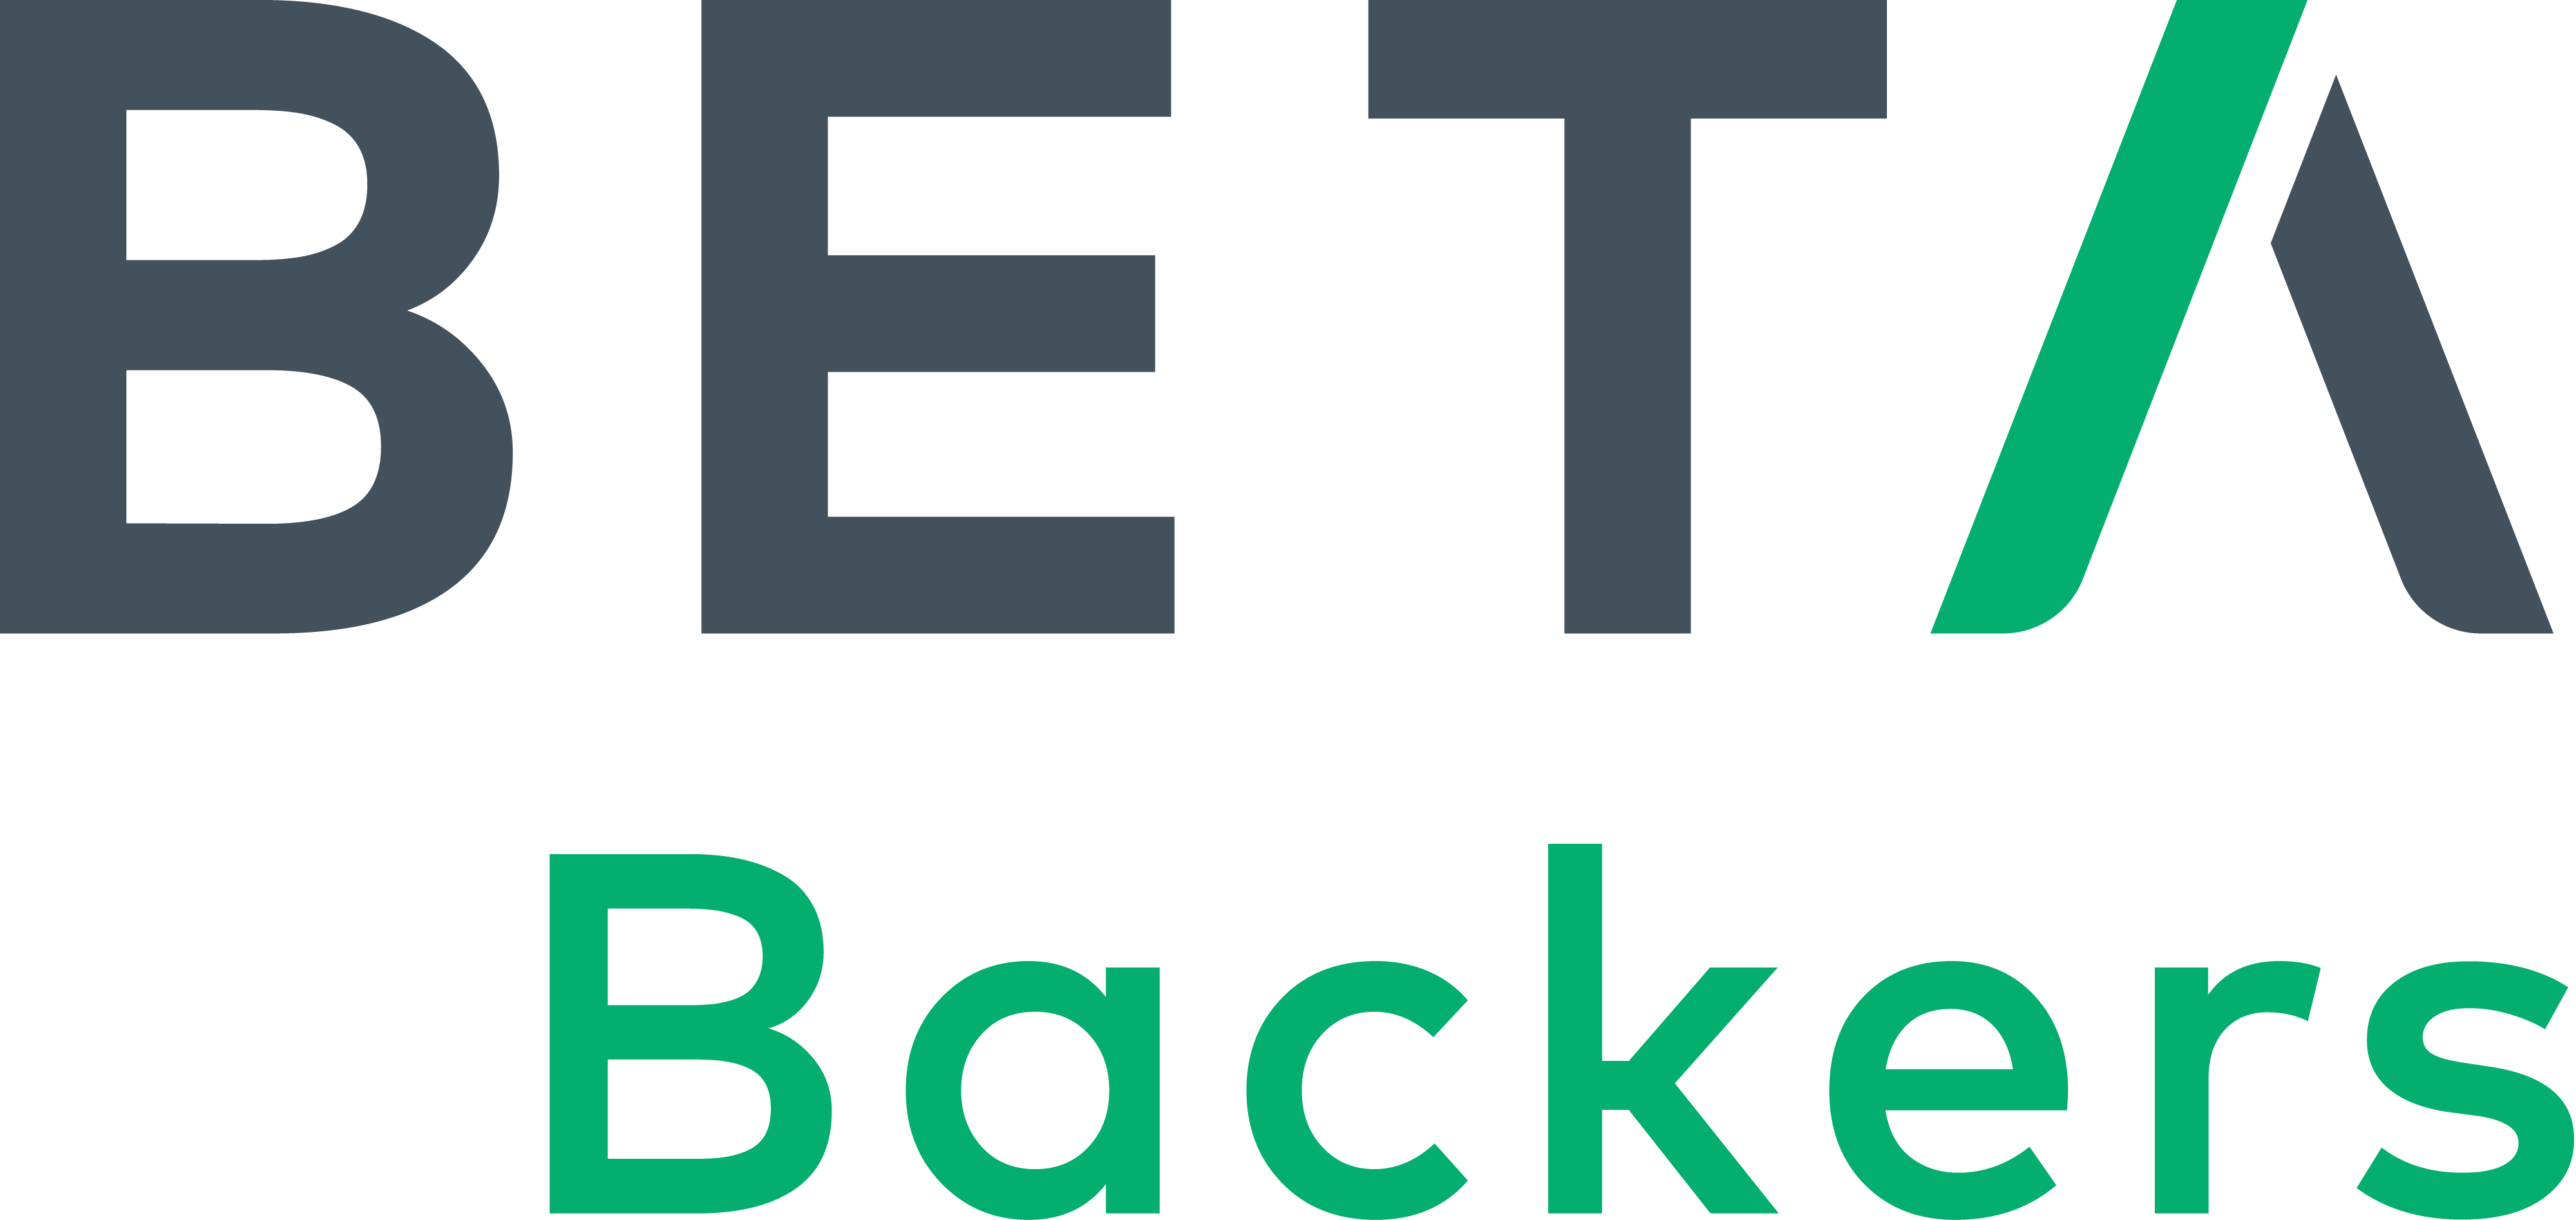 BETA.MN Backers Logo